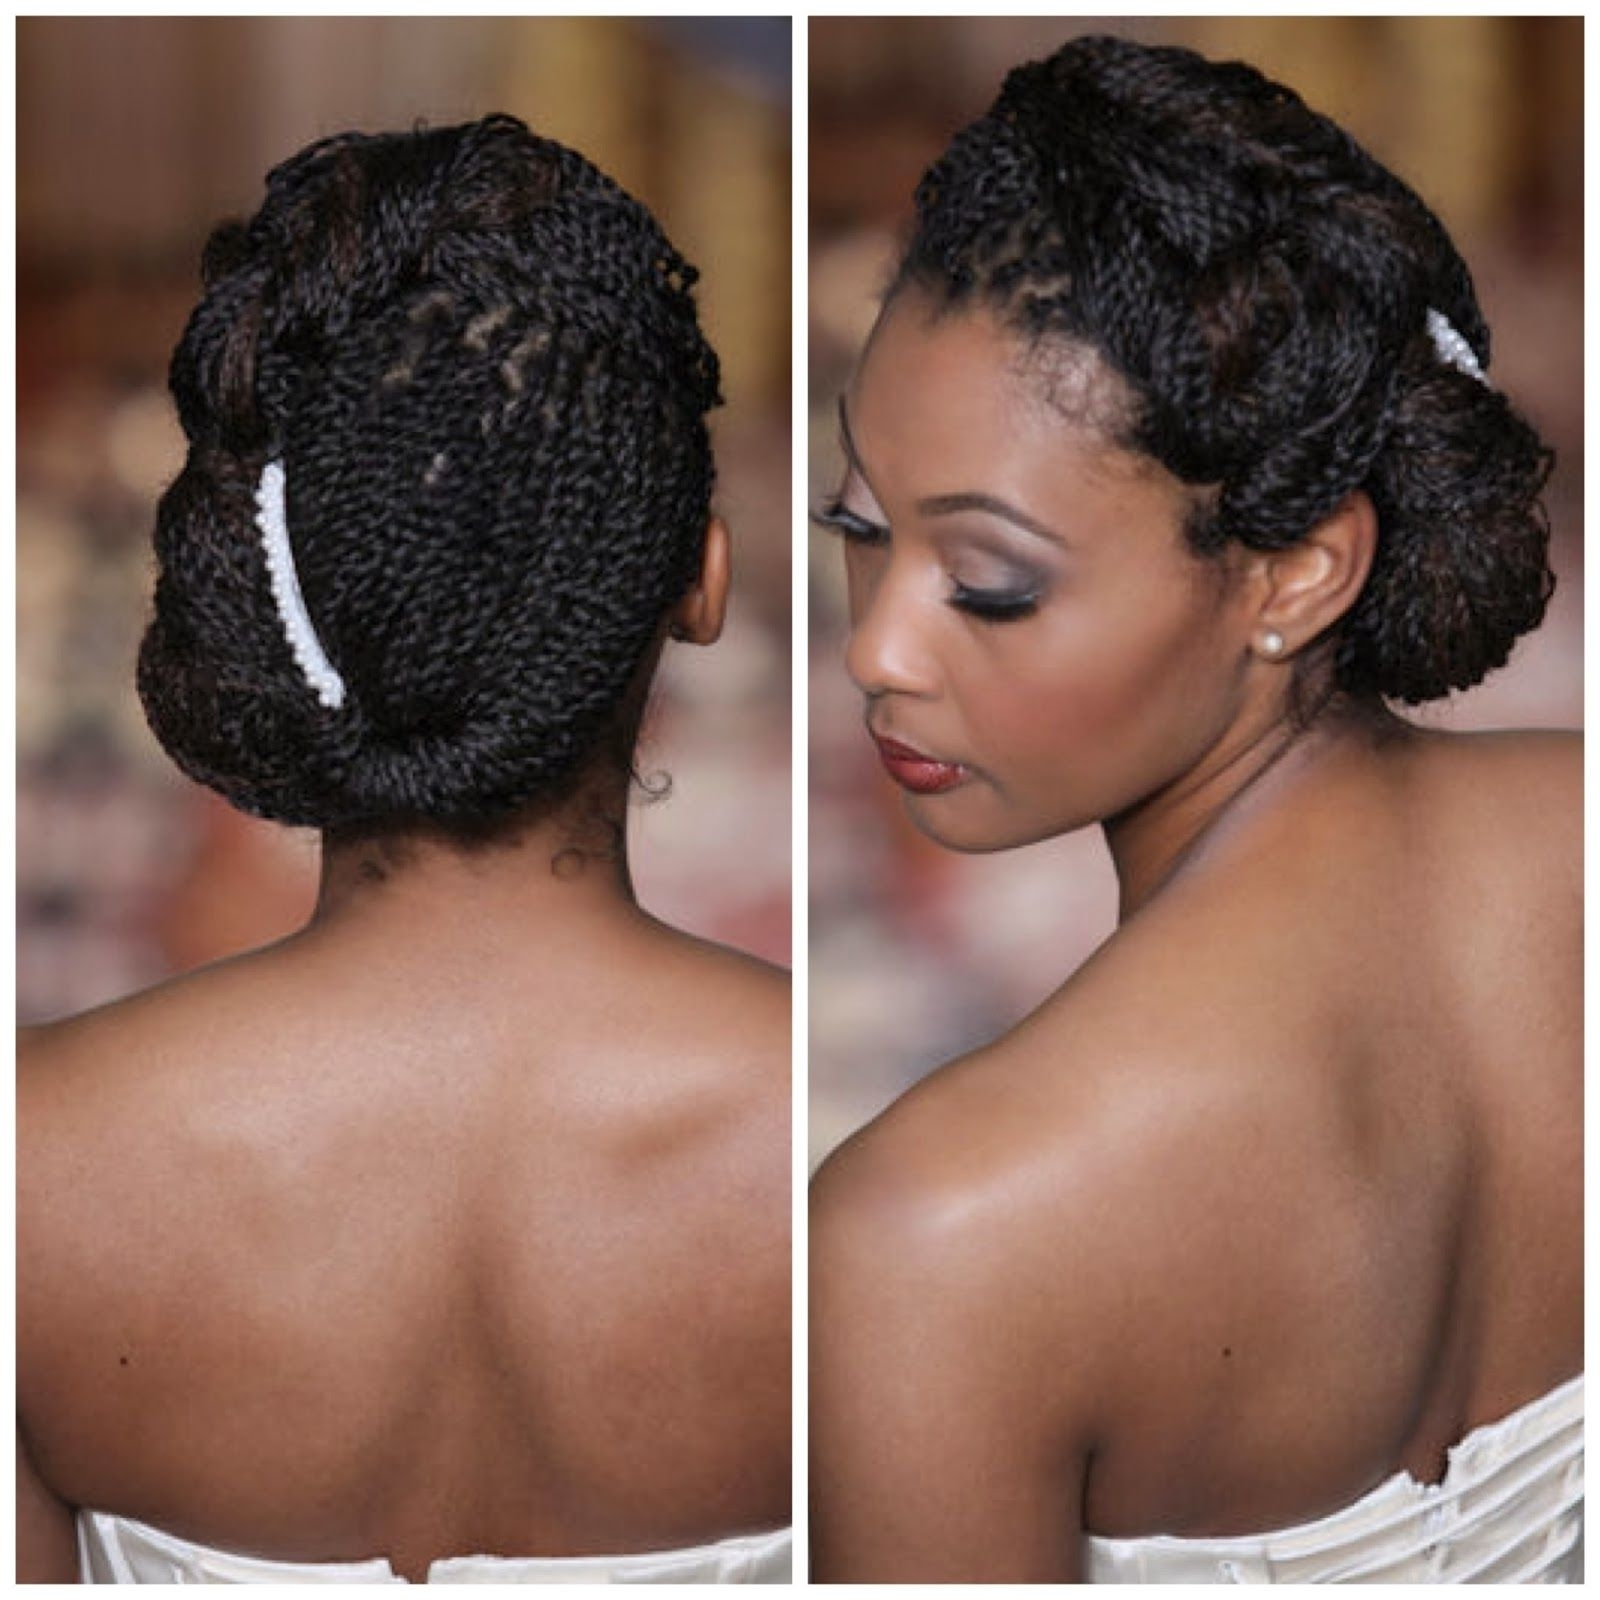 Preferred Wedding Hairstyles For Short Kinky Hair Intended For Nappilynigeriangirl: How To Prepare Your Natural Hair For A (View 12 of 15)